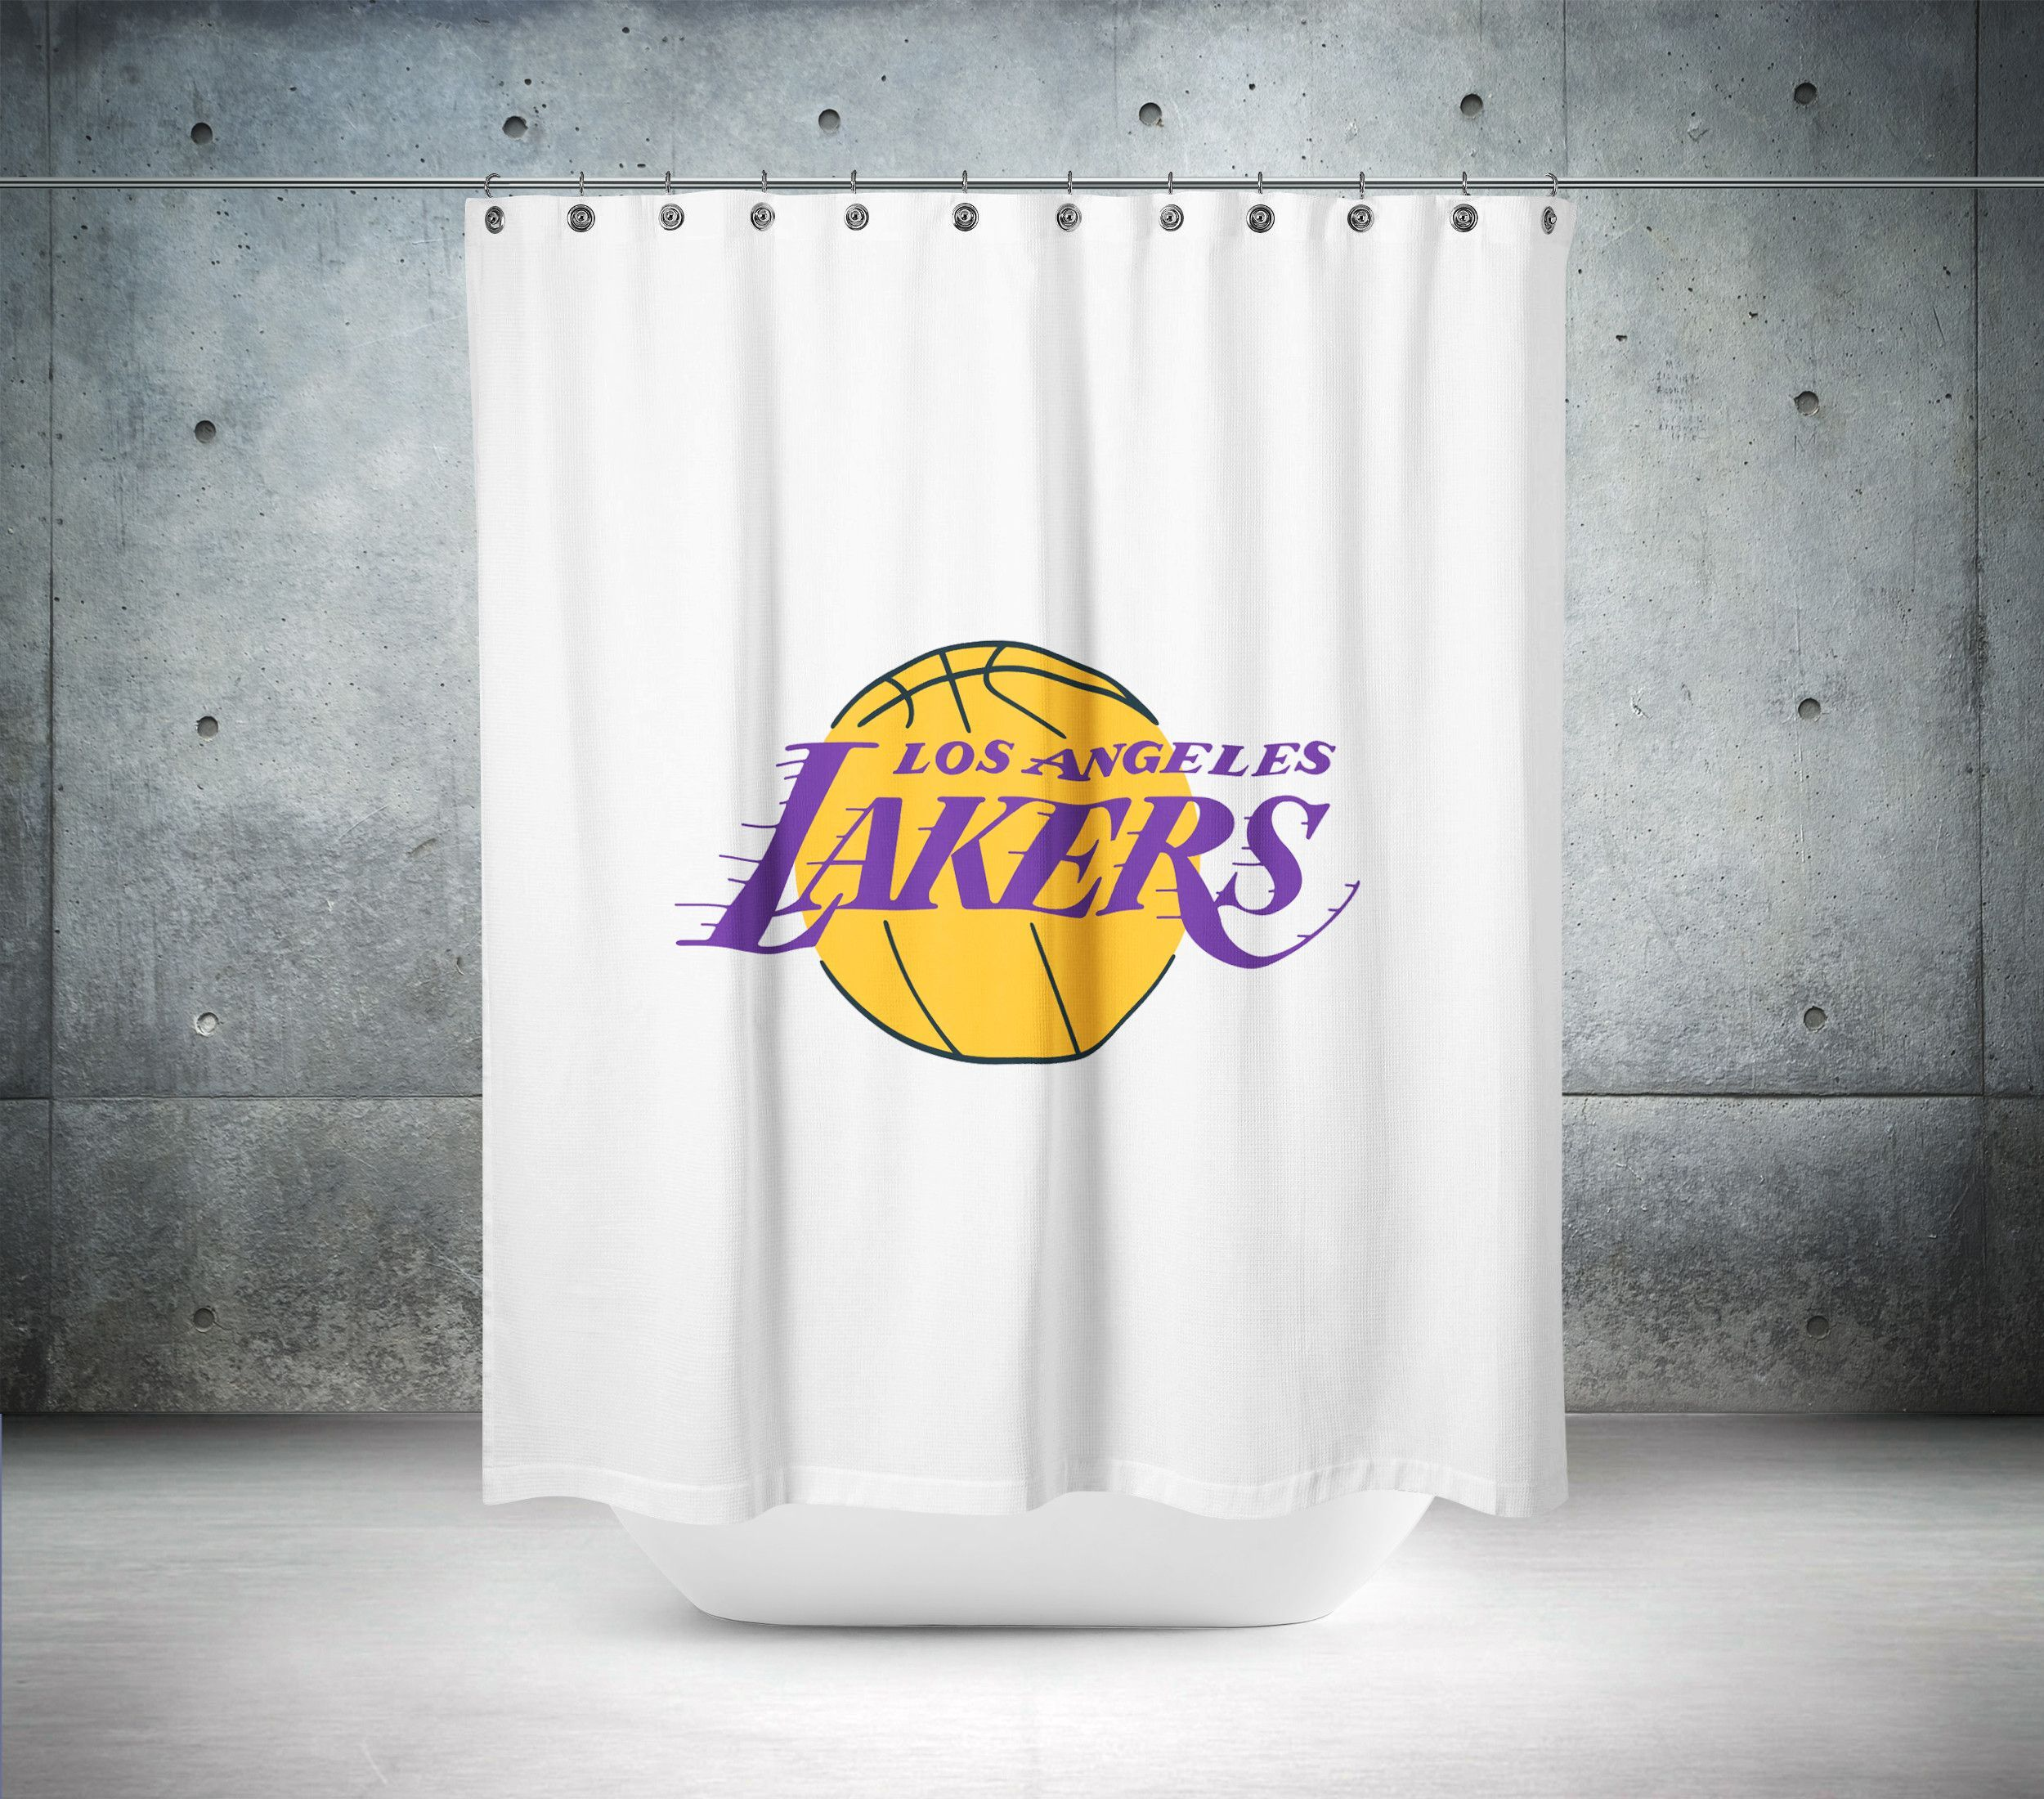 La Lakers Nba Shower Curtain Curtains Shower Curtain Printed